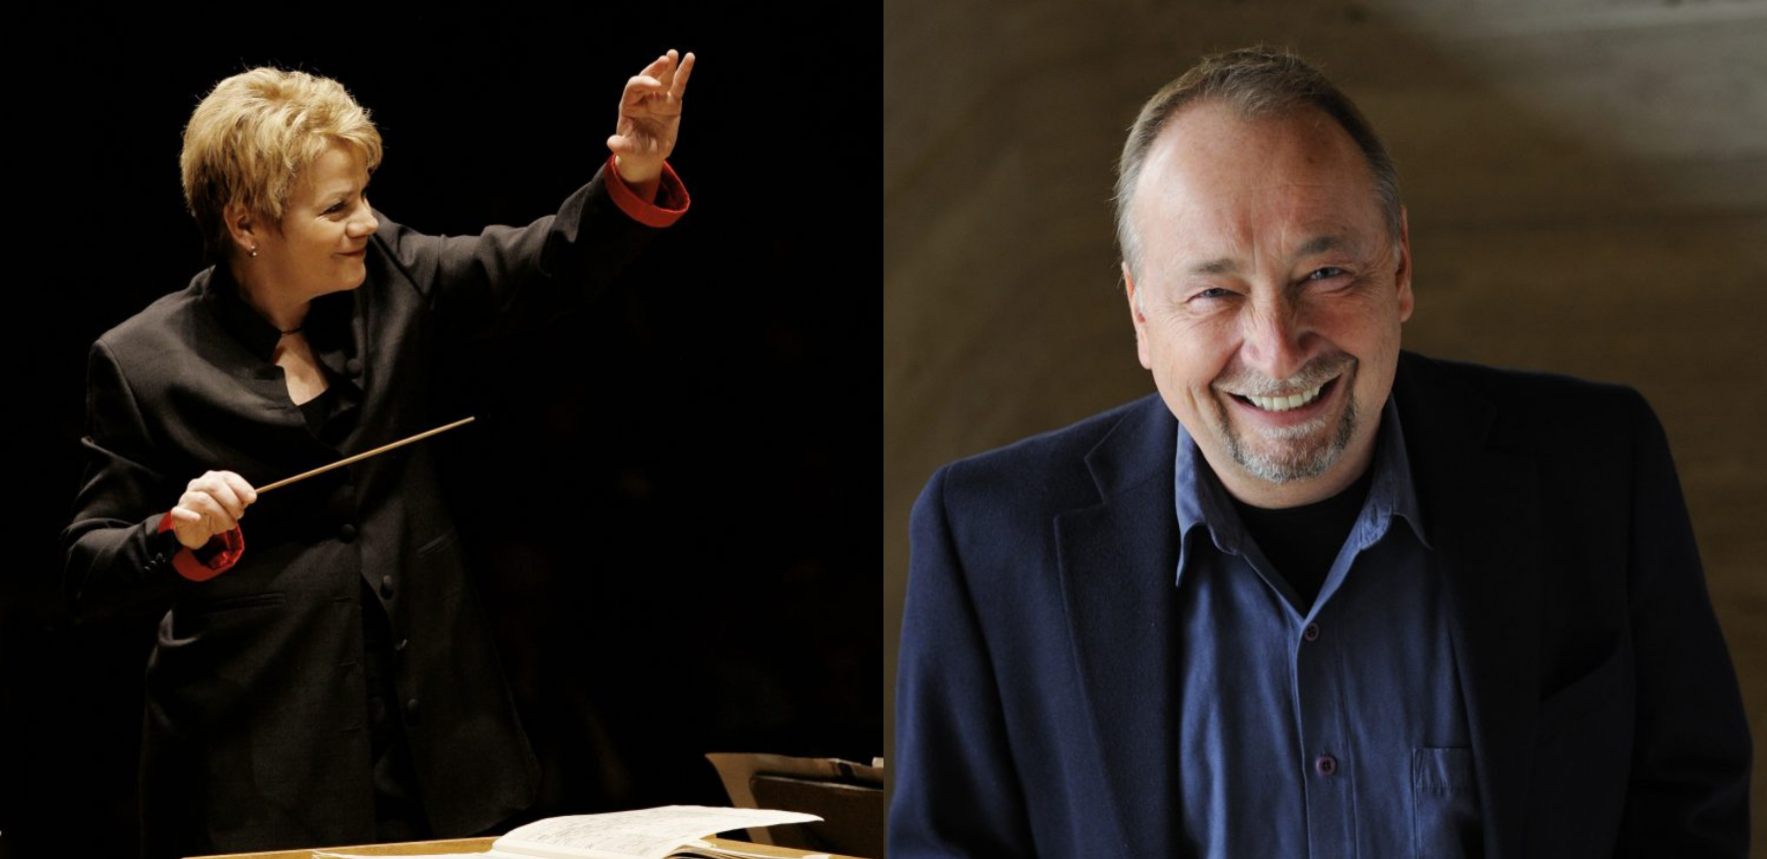 Conductor's Roundtable - Marin Alsop & George Manahan image